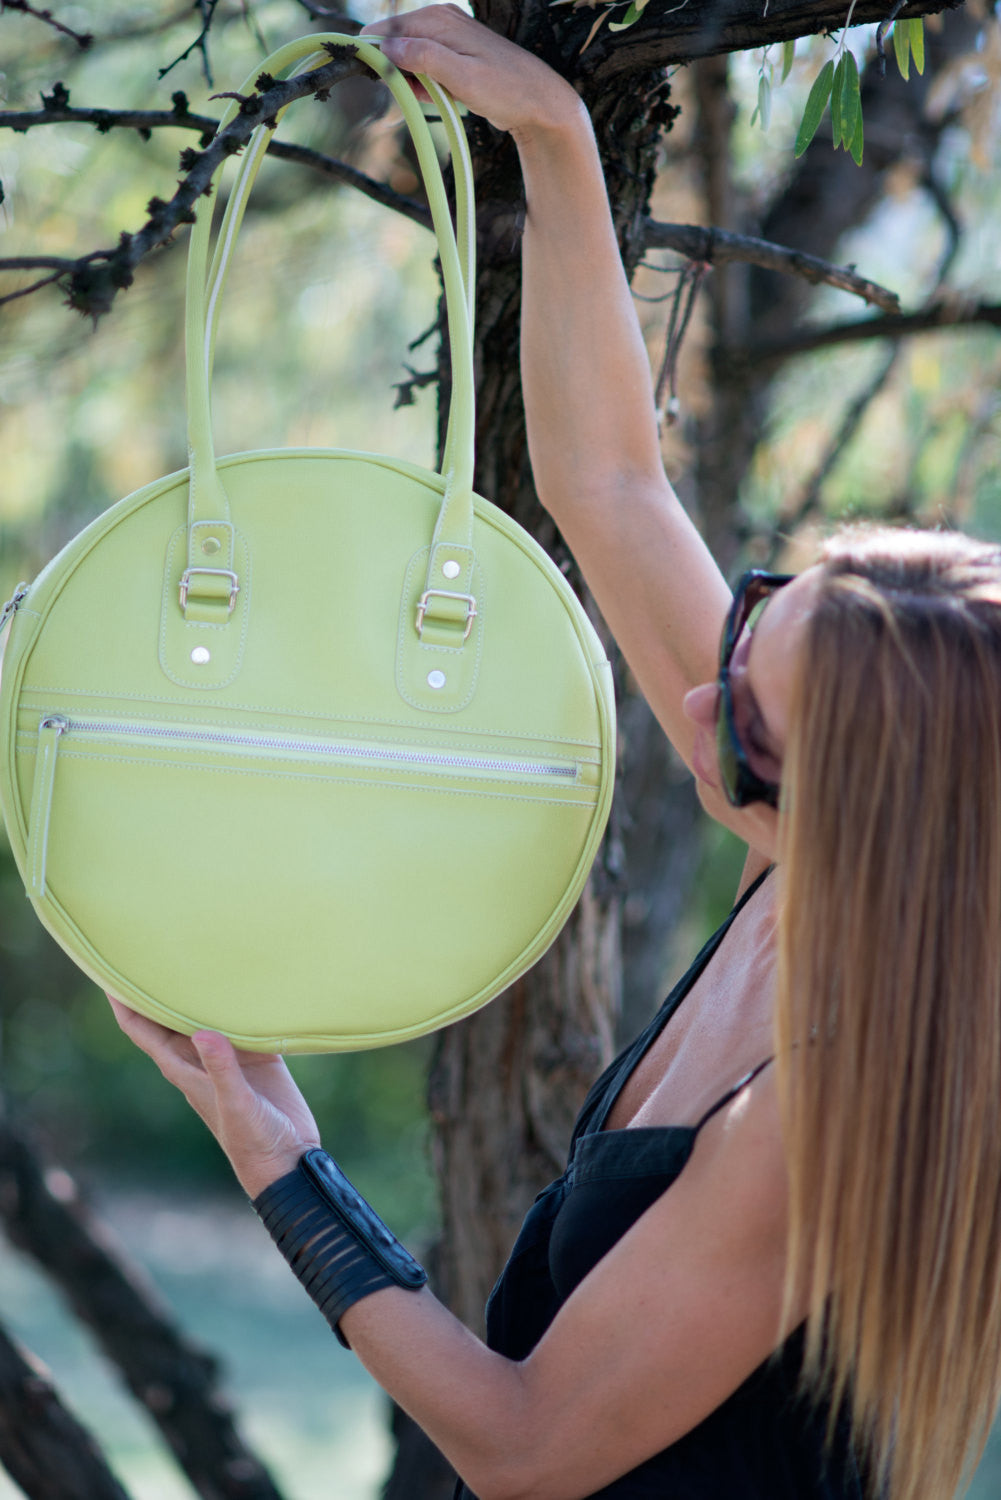 Lemon Green Leather Tote Bag, Leather Handbag, Bags & Accessories